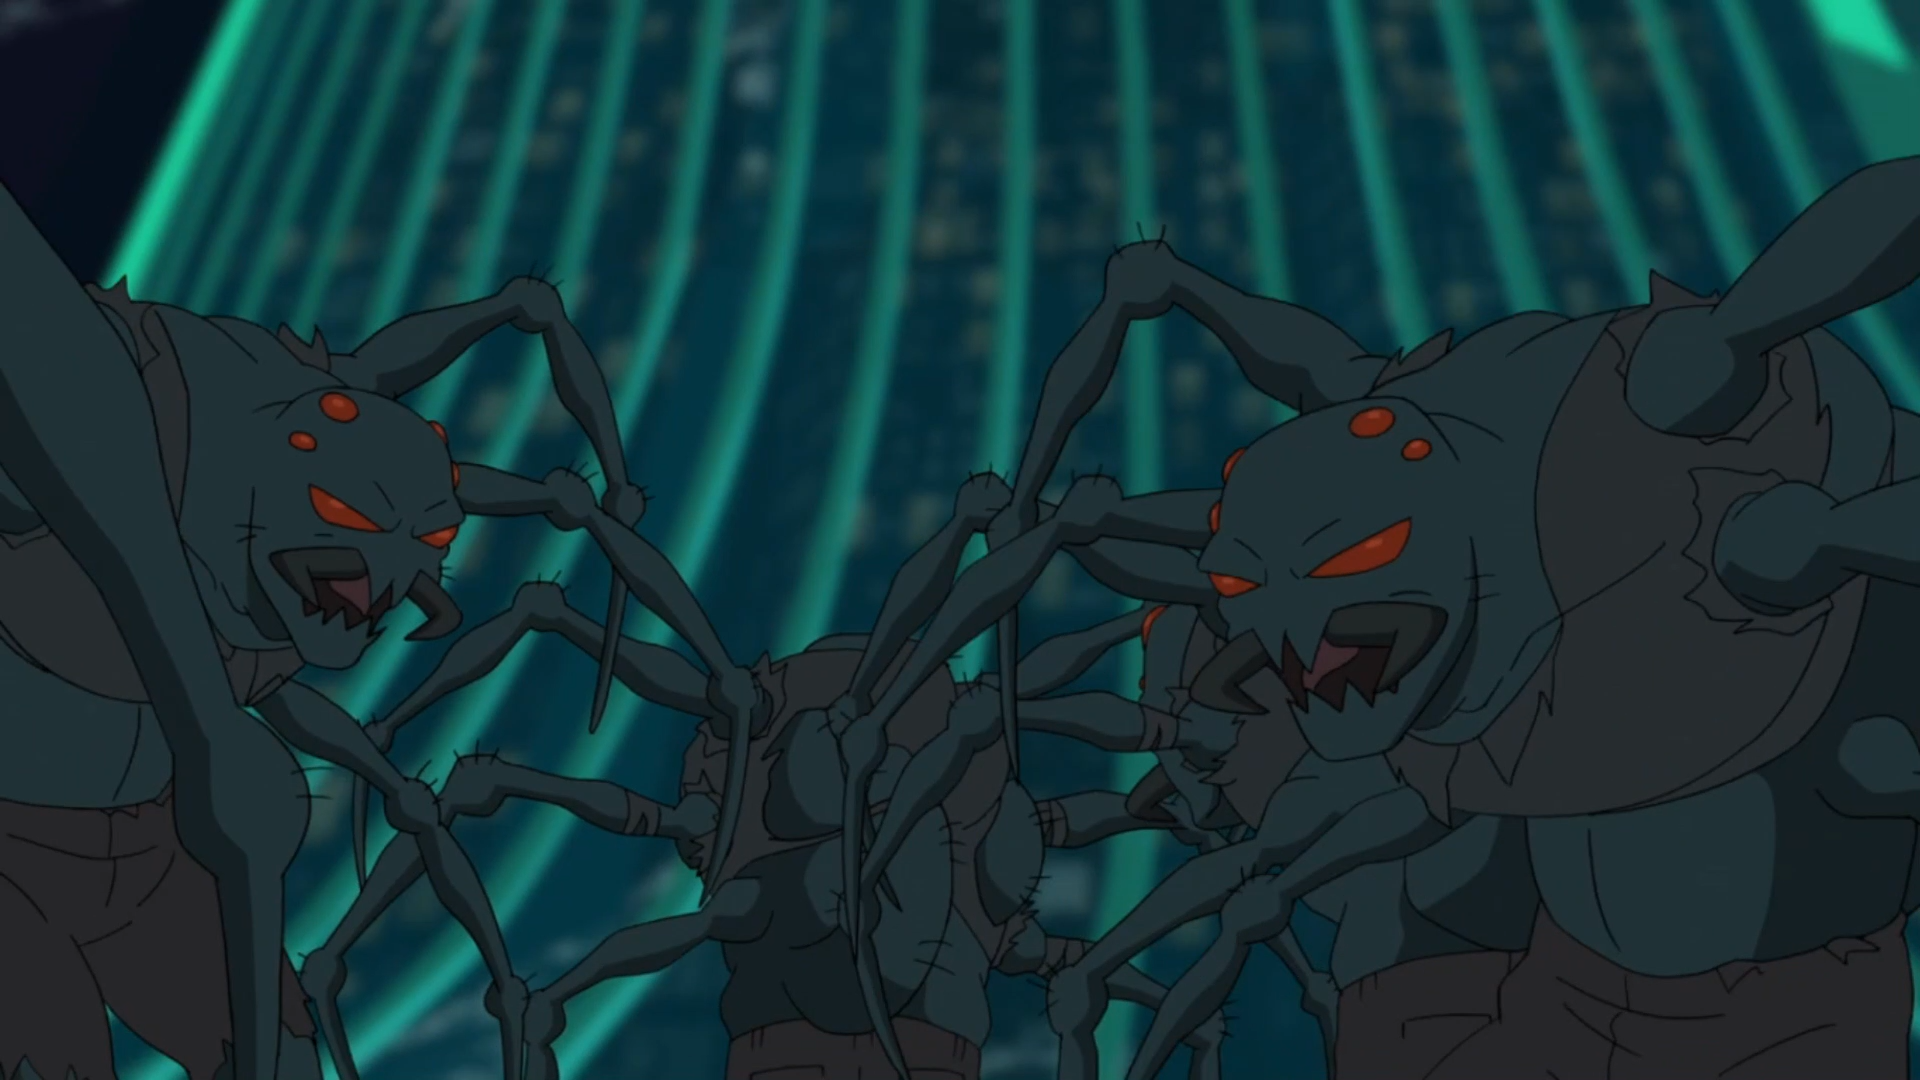 Spider-Monsters